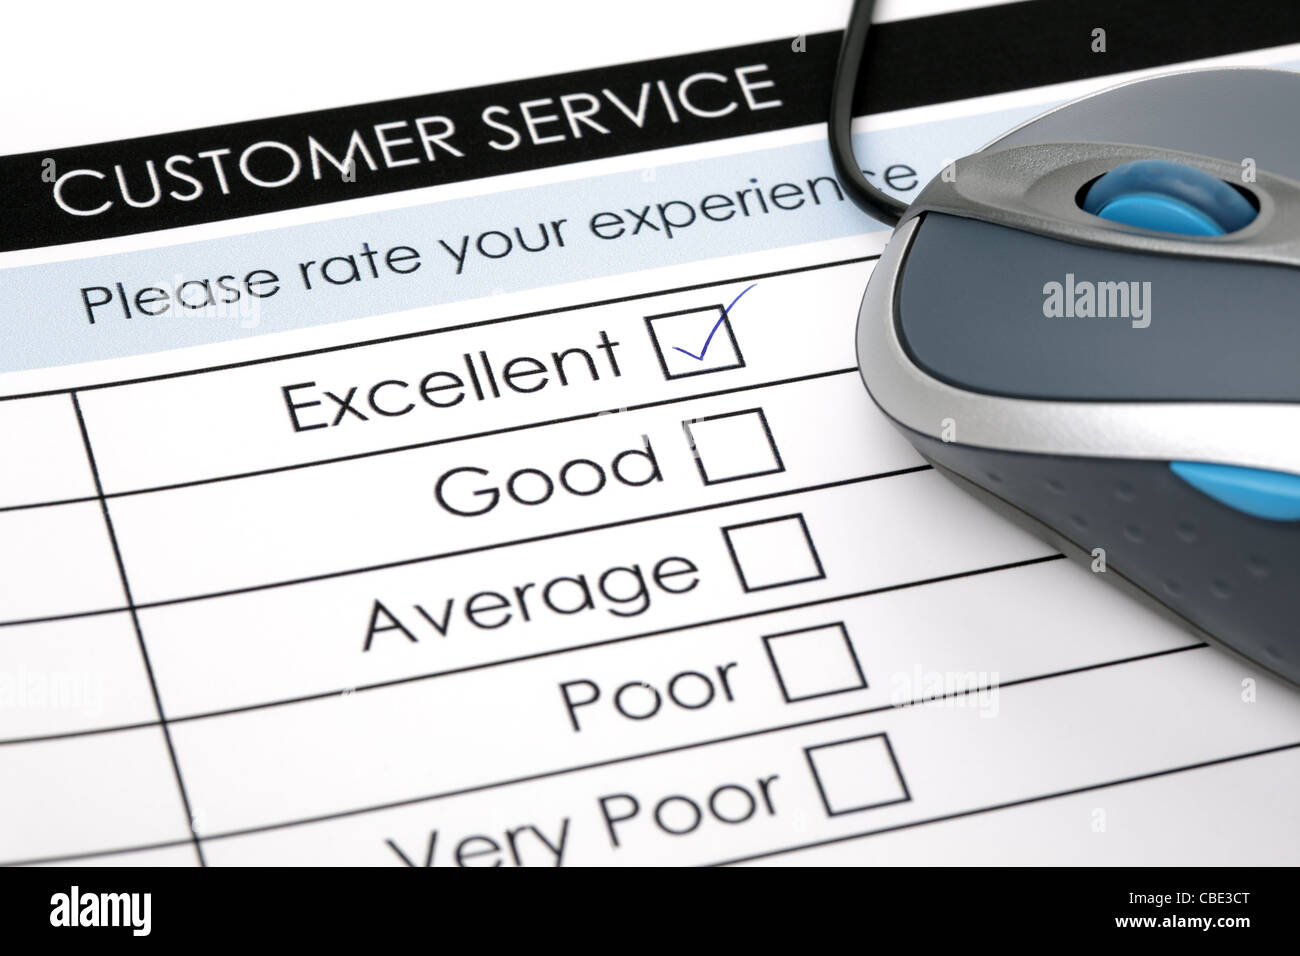 Online customer service satisfaction survey - Stock Image